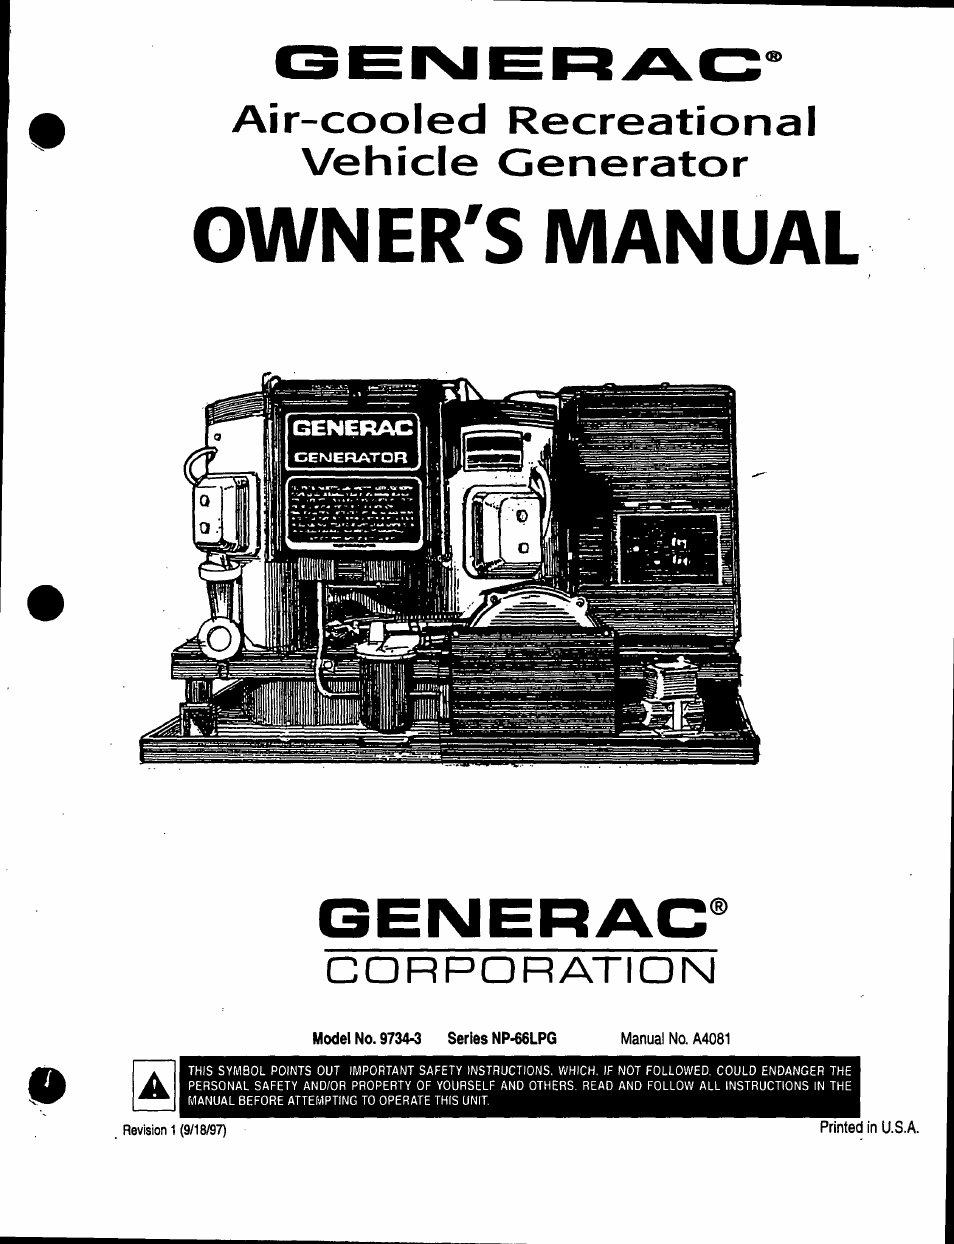 Generac Power Systems Air-cooled Recreational Vehicle